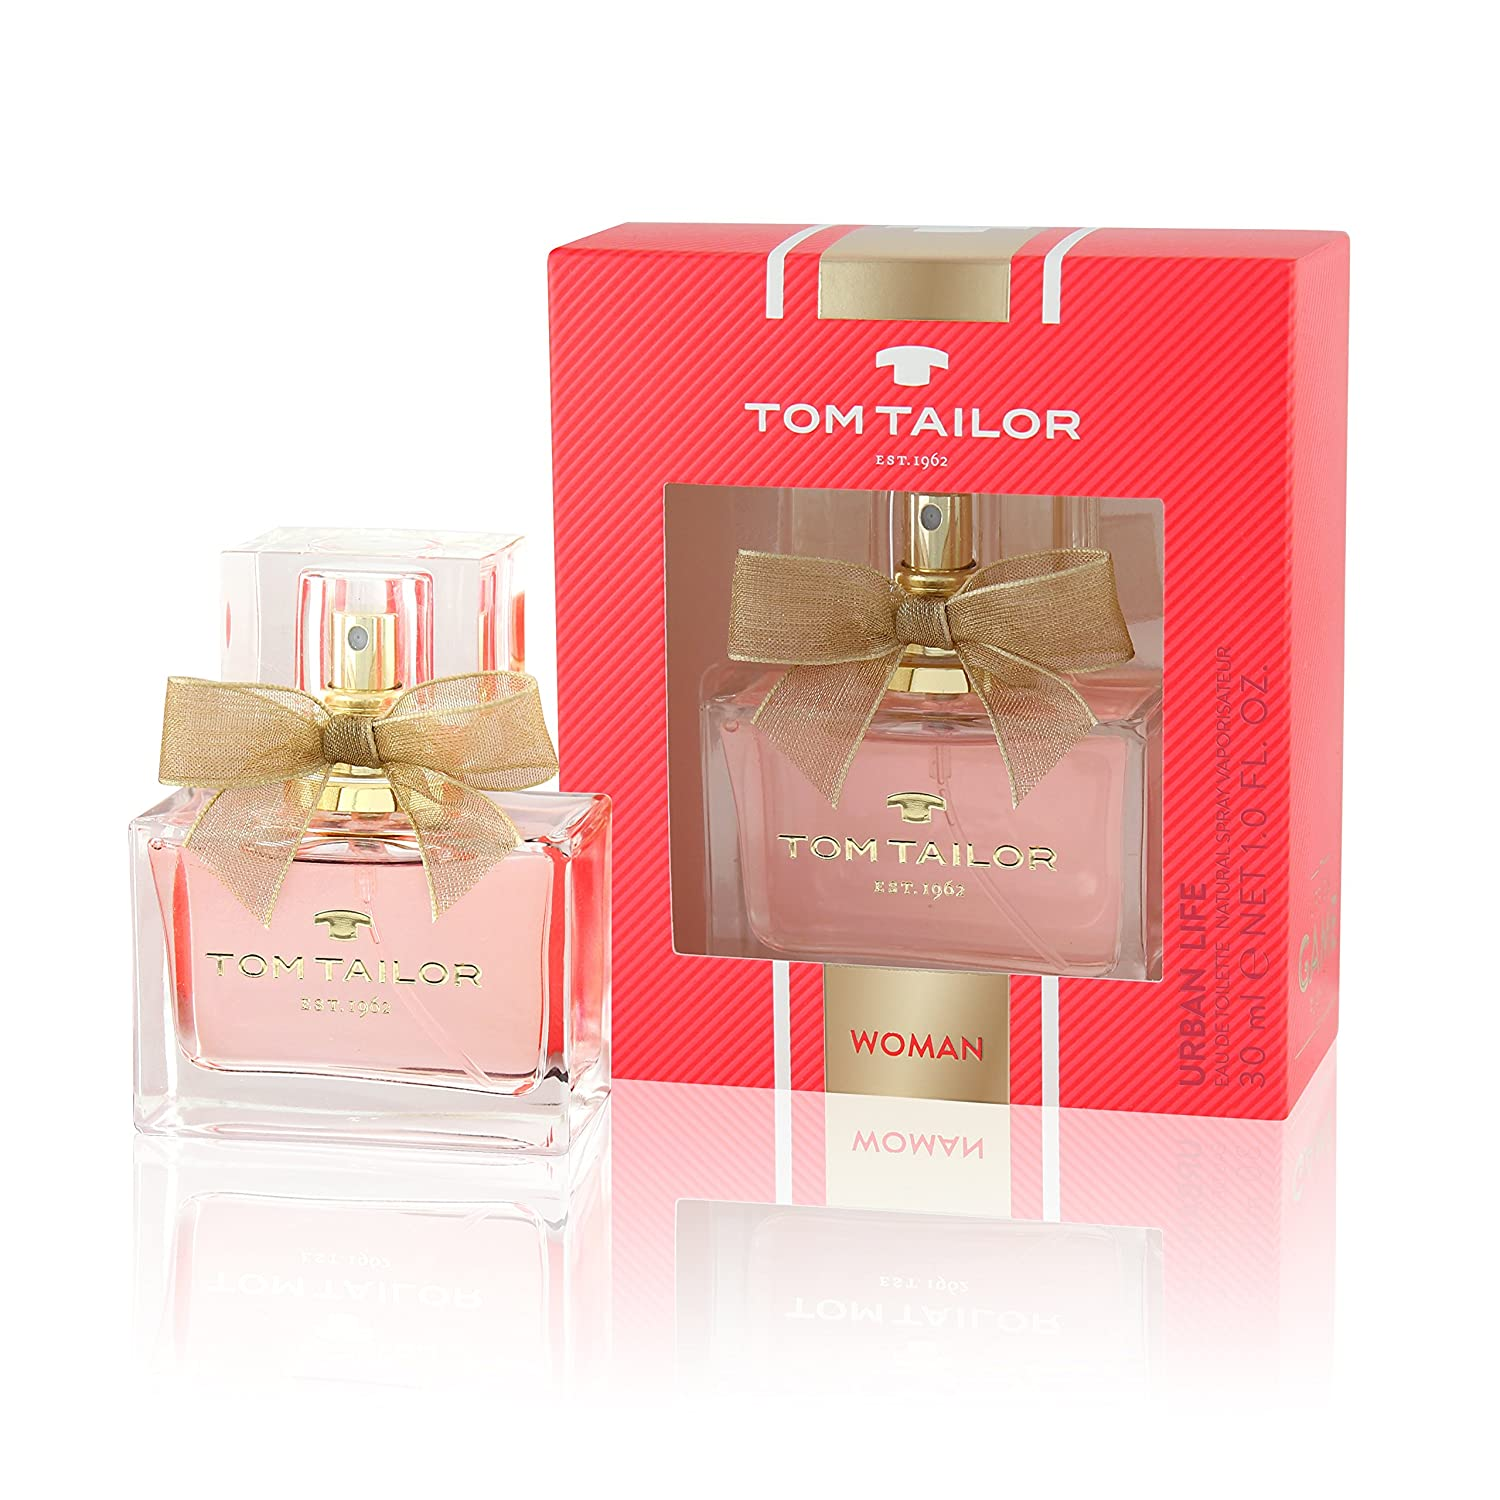 suchen niedrigster Rabatt große sorten TOM TAILOR Urban Life EDT for Woman 30 ml: Amazon.co.uk: Beauty